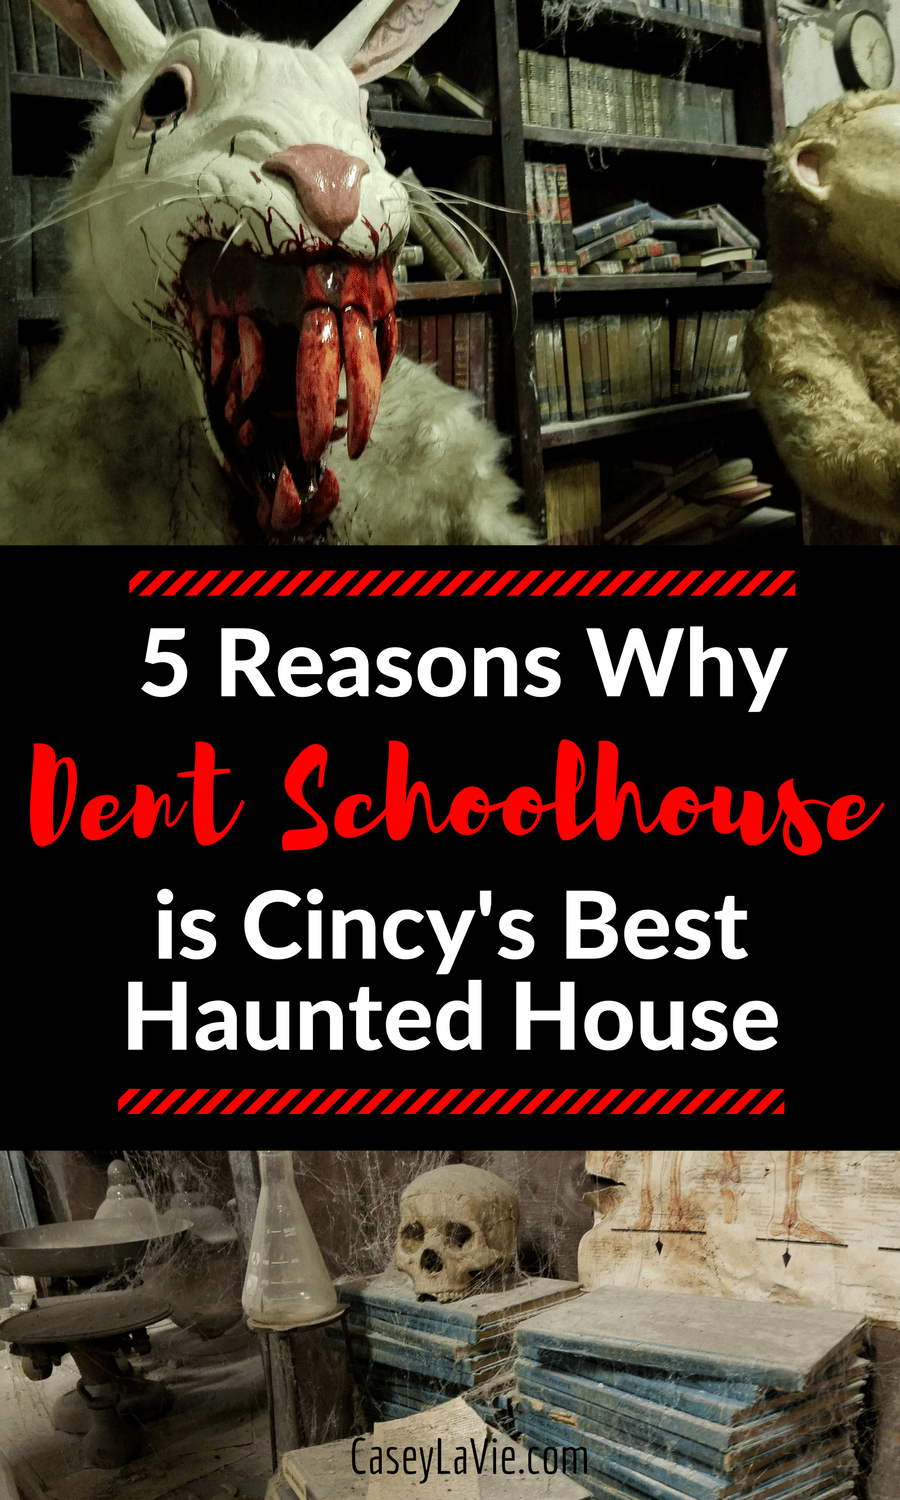 5 Reasons Why The Dent Schoolhouse is Cincinnati's Best Haunted House. This Place is Worth The Trip for All Thrill-Seekers!